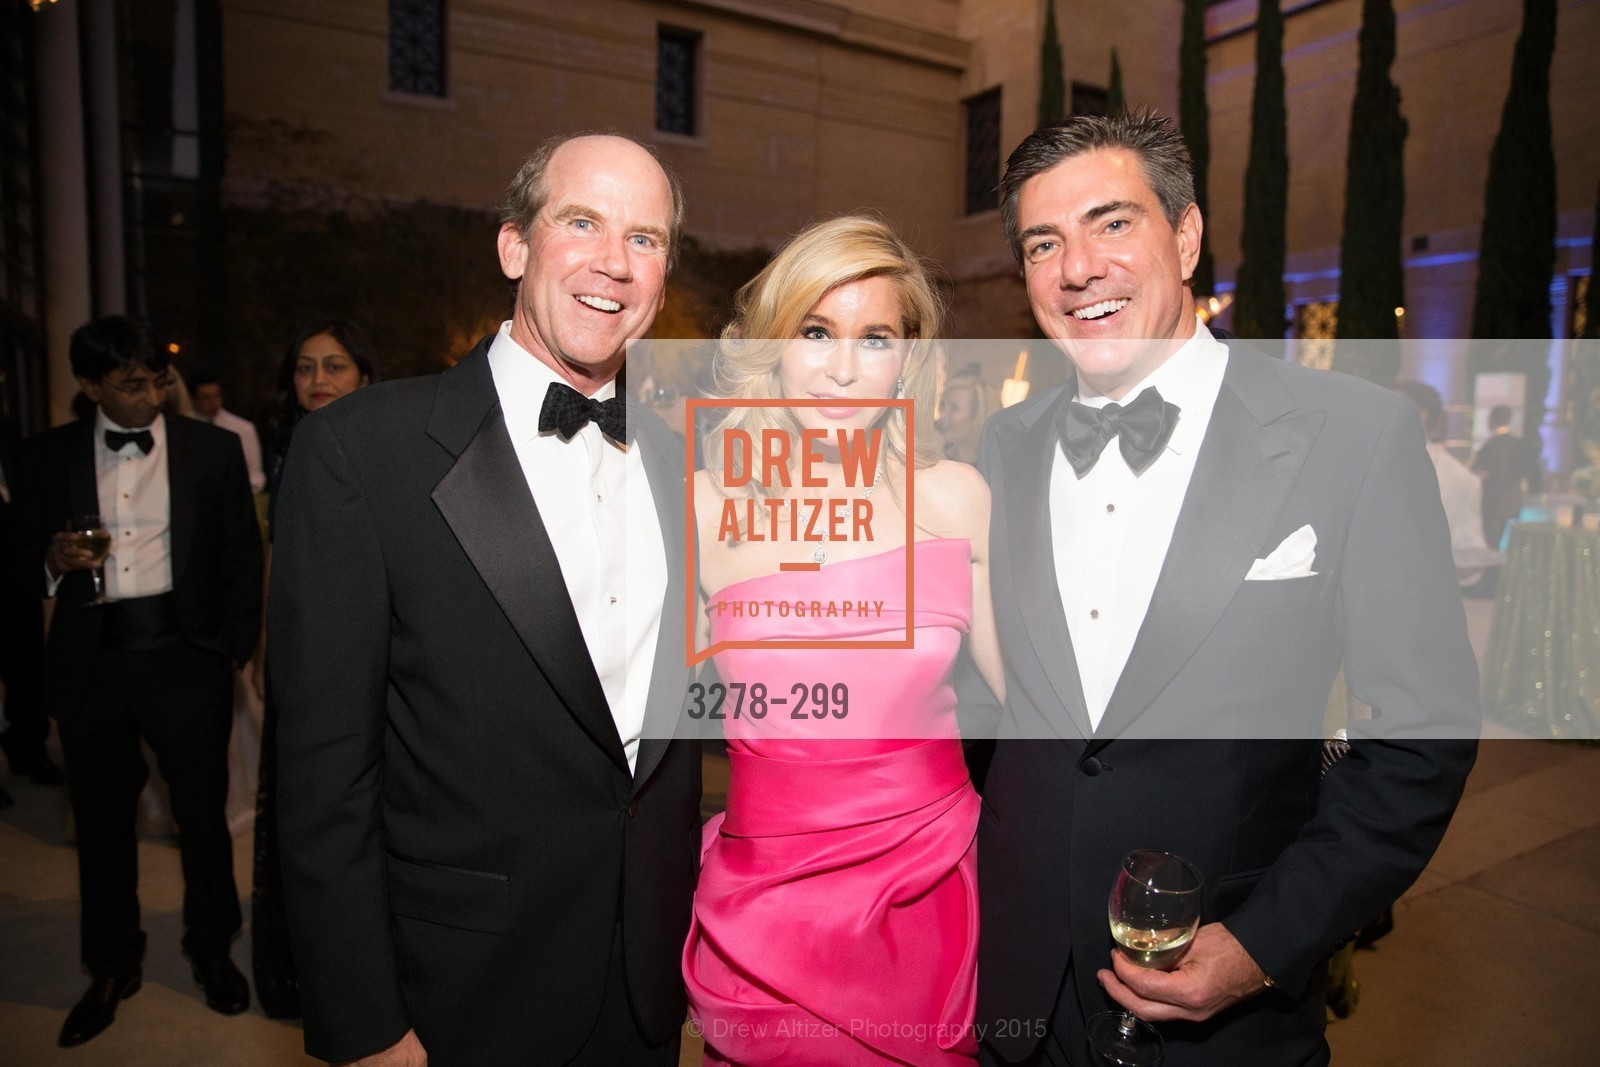 Fred Harman, Paula Carano, Bandel Carano, Stanford University's Cantor Arts Center Presents Rodin by Moonlight, Stanford University, September 19th, 2015,Drew Altizer, Drew Altizer Photography, full-service agency, private events, San Francisco photographer, photographer california